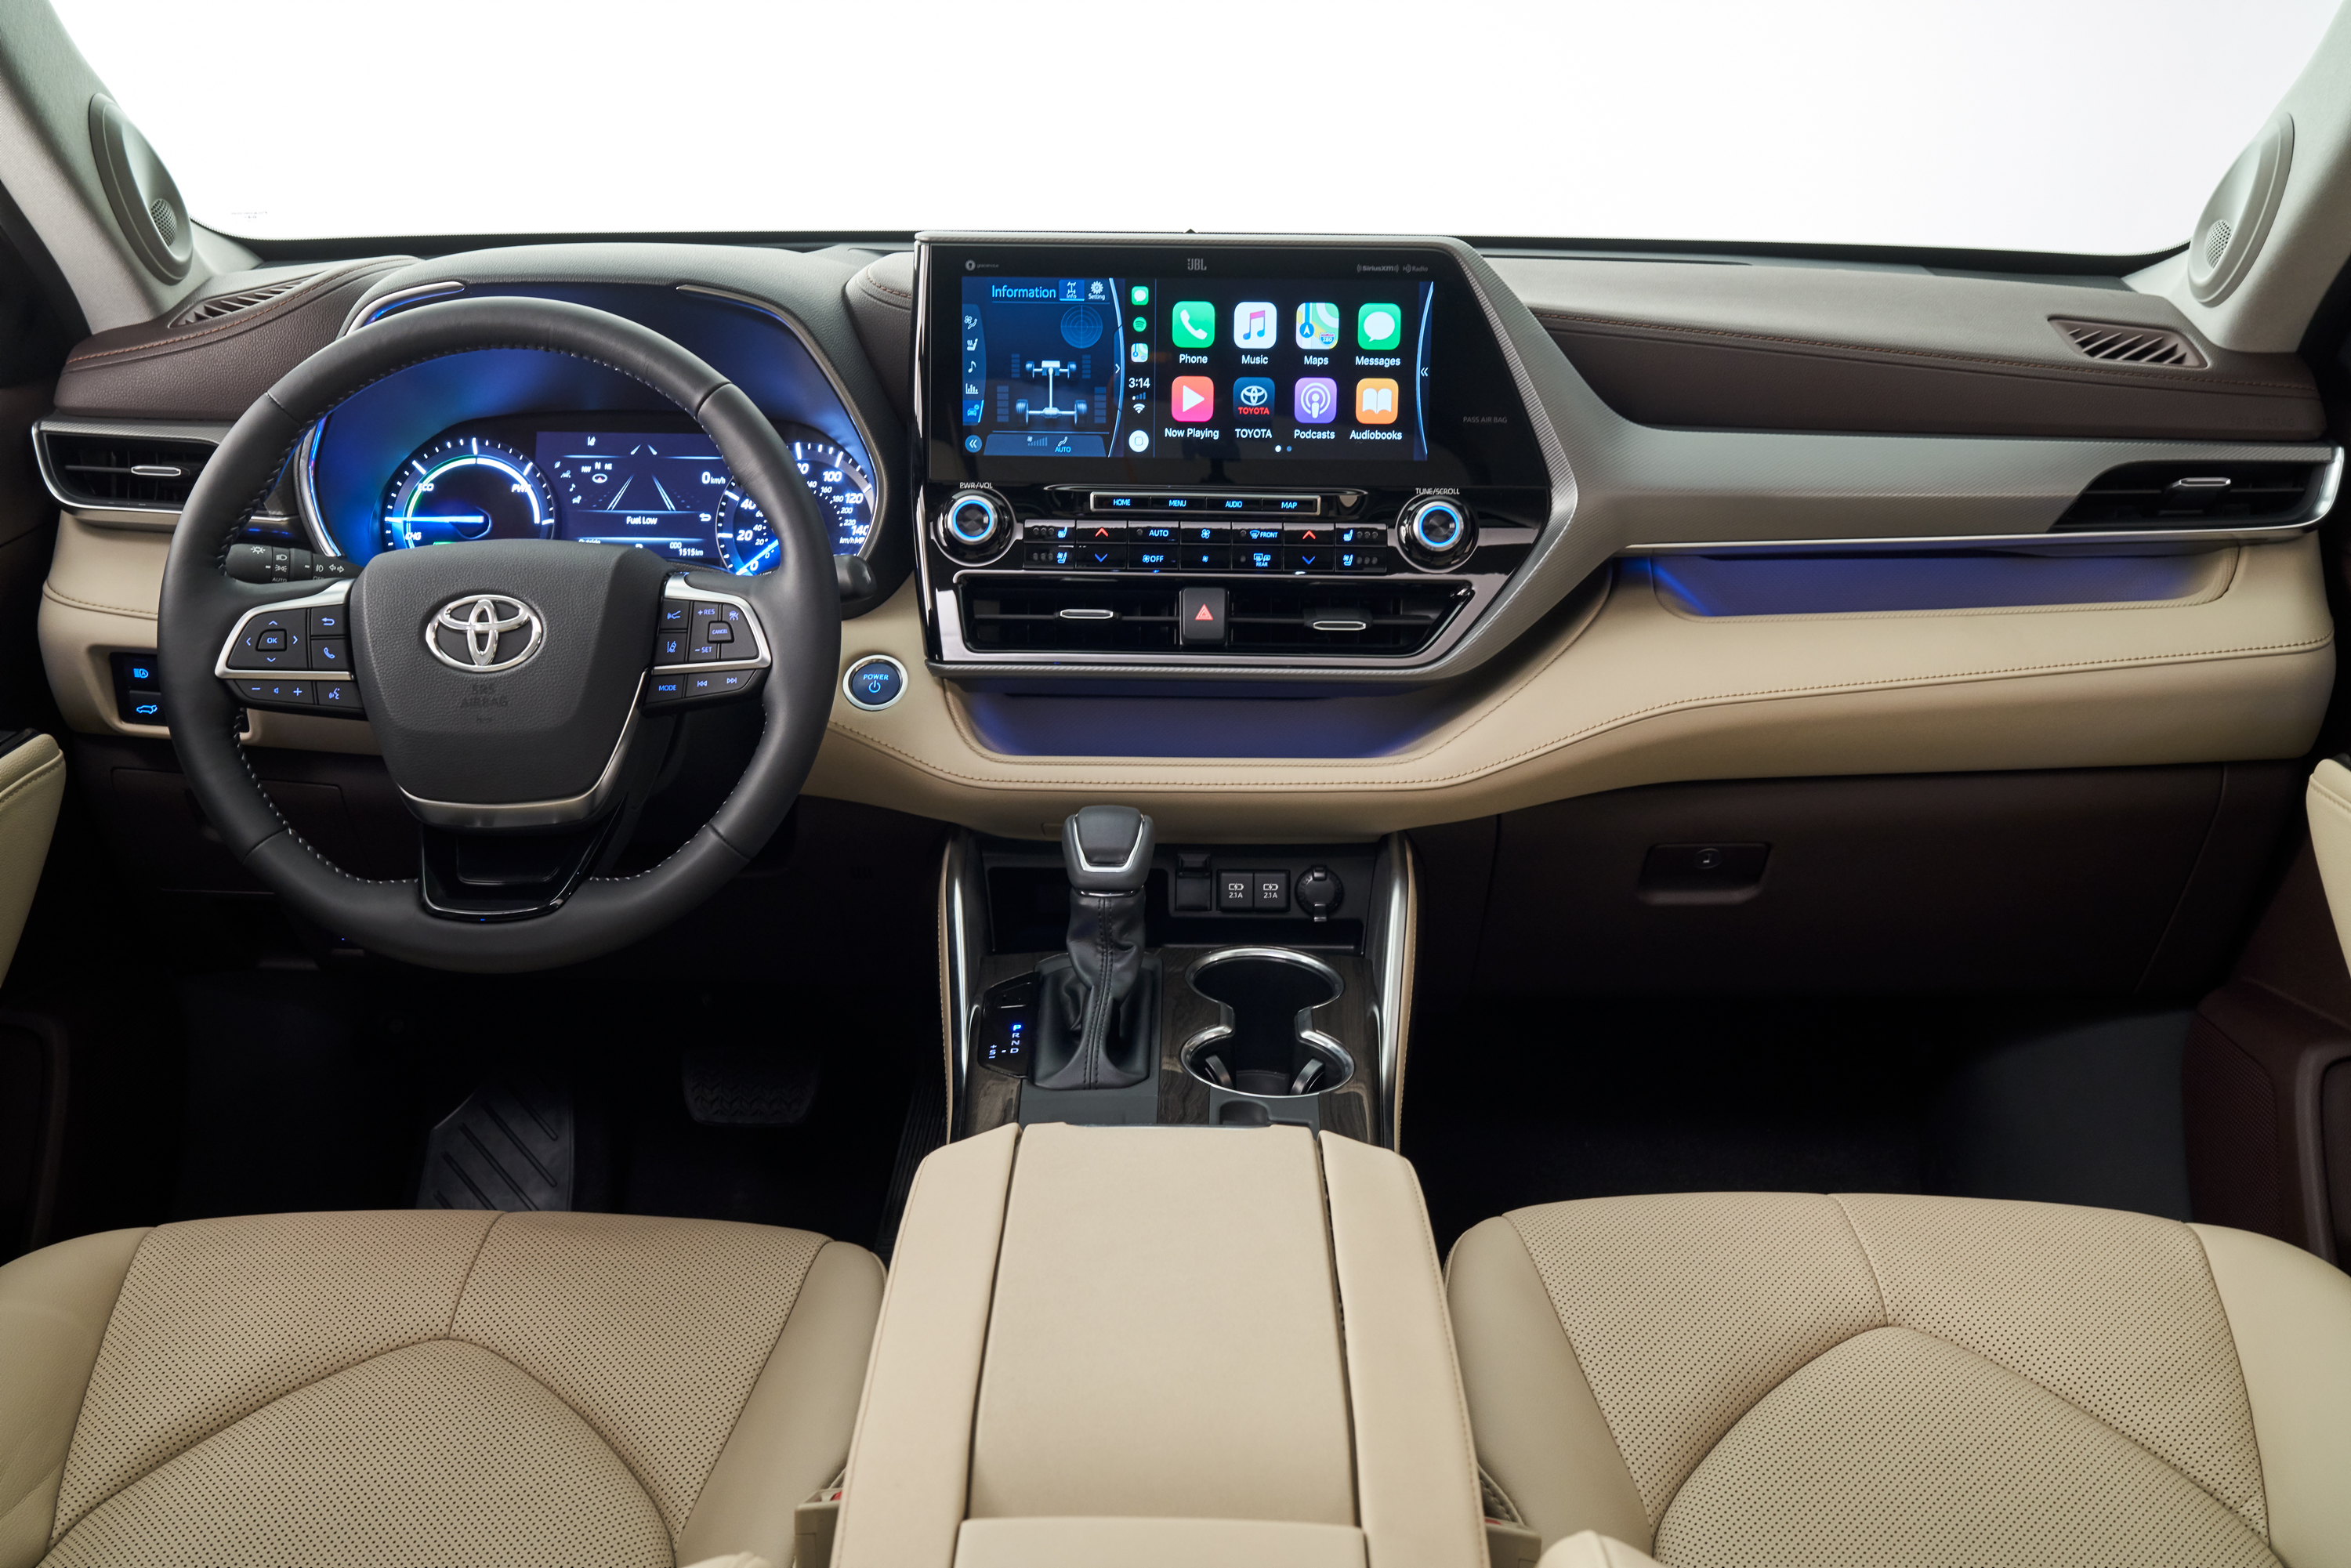 The 2020 Toyota Highlander comes with Android Auto standard